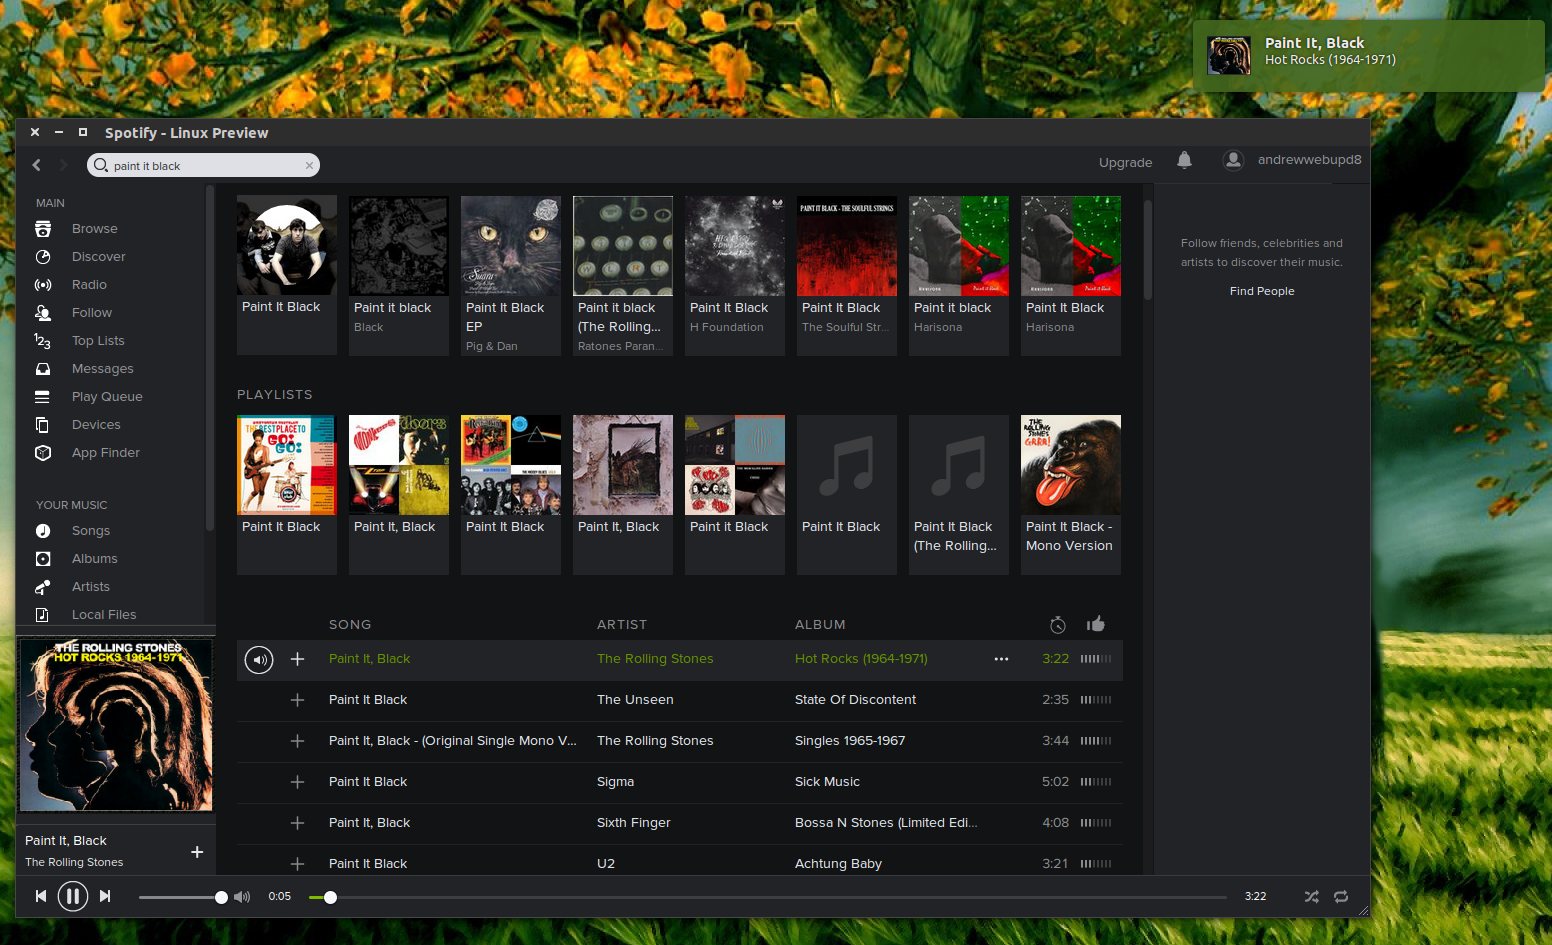 Spotify For Linux Gets A Refreshed User Interface, Other